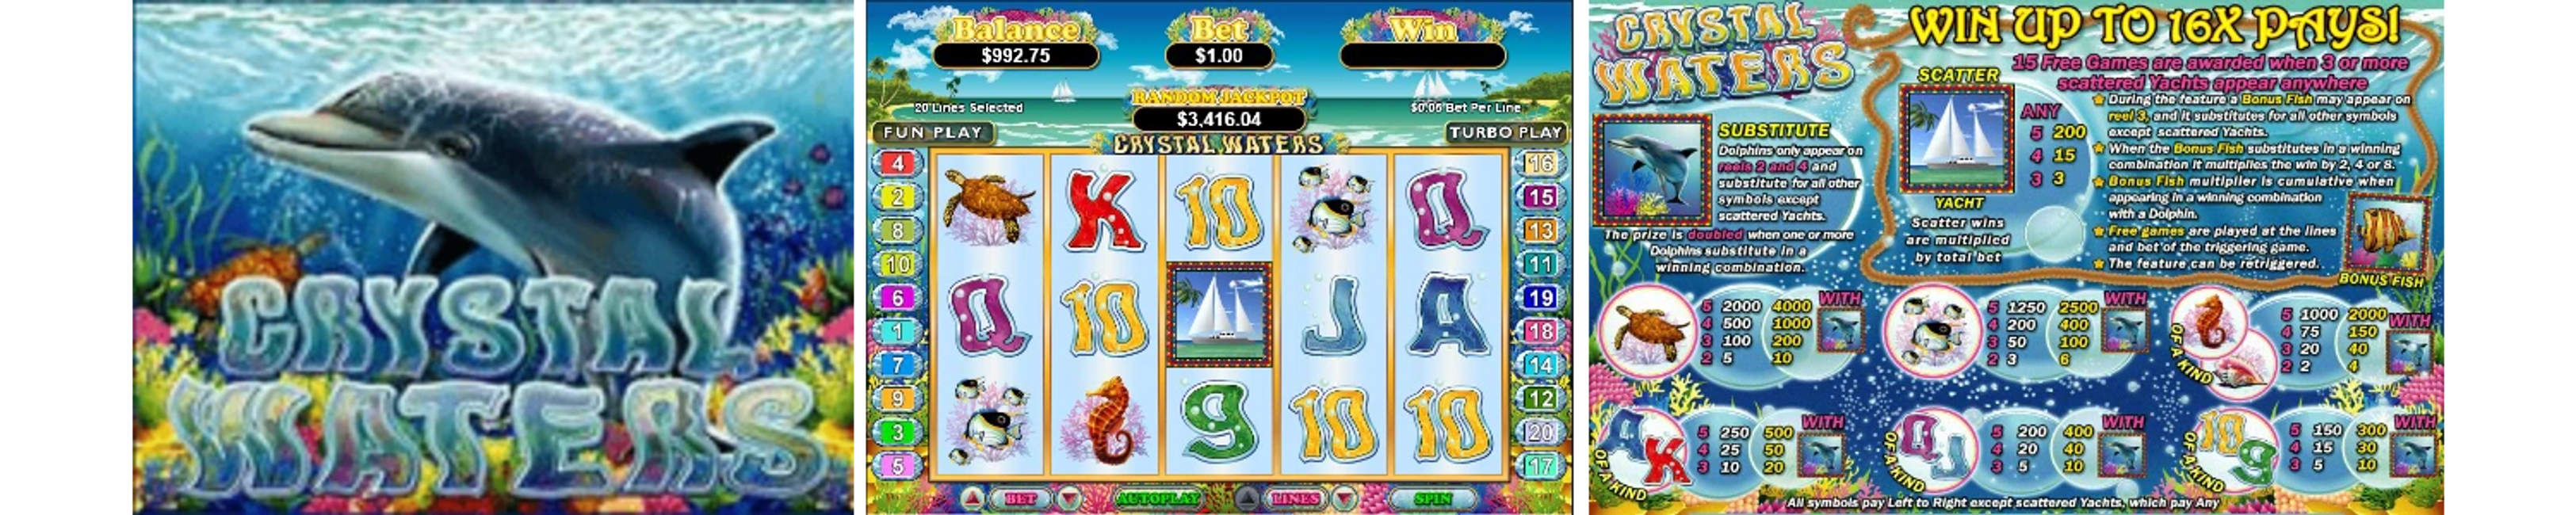 Crystal Waters Online Video Slot Review